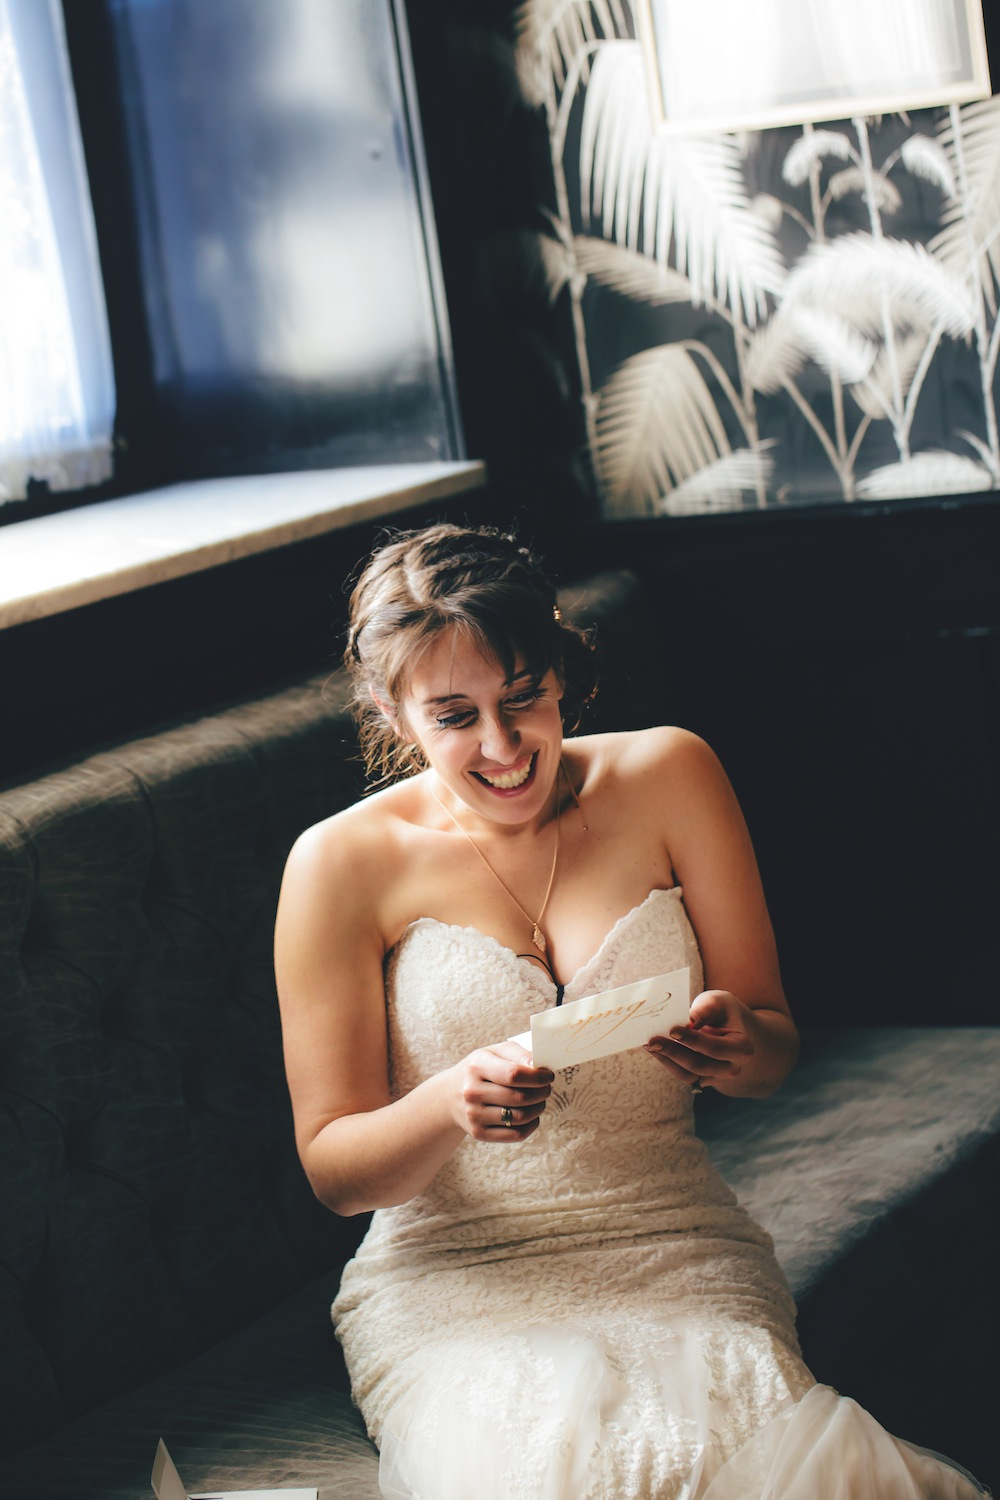 jamie-reading-jonathans-letter-and-smiling-in-wedding-photography-nyc